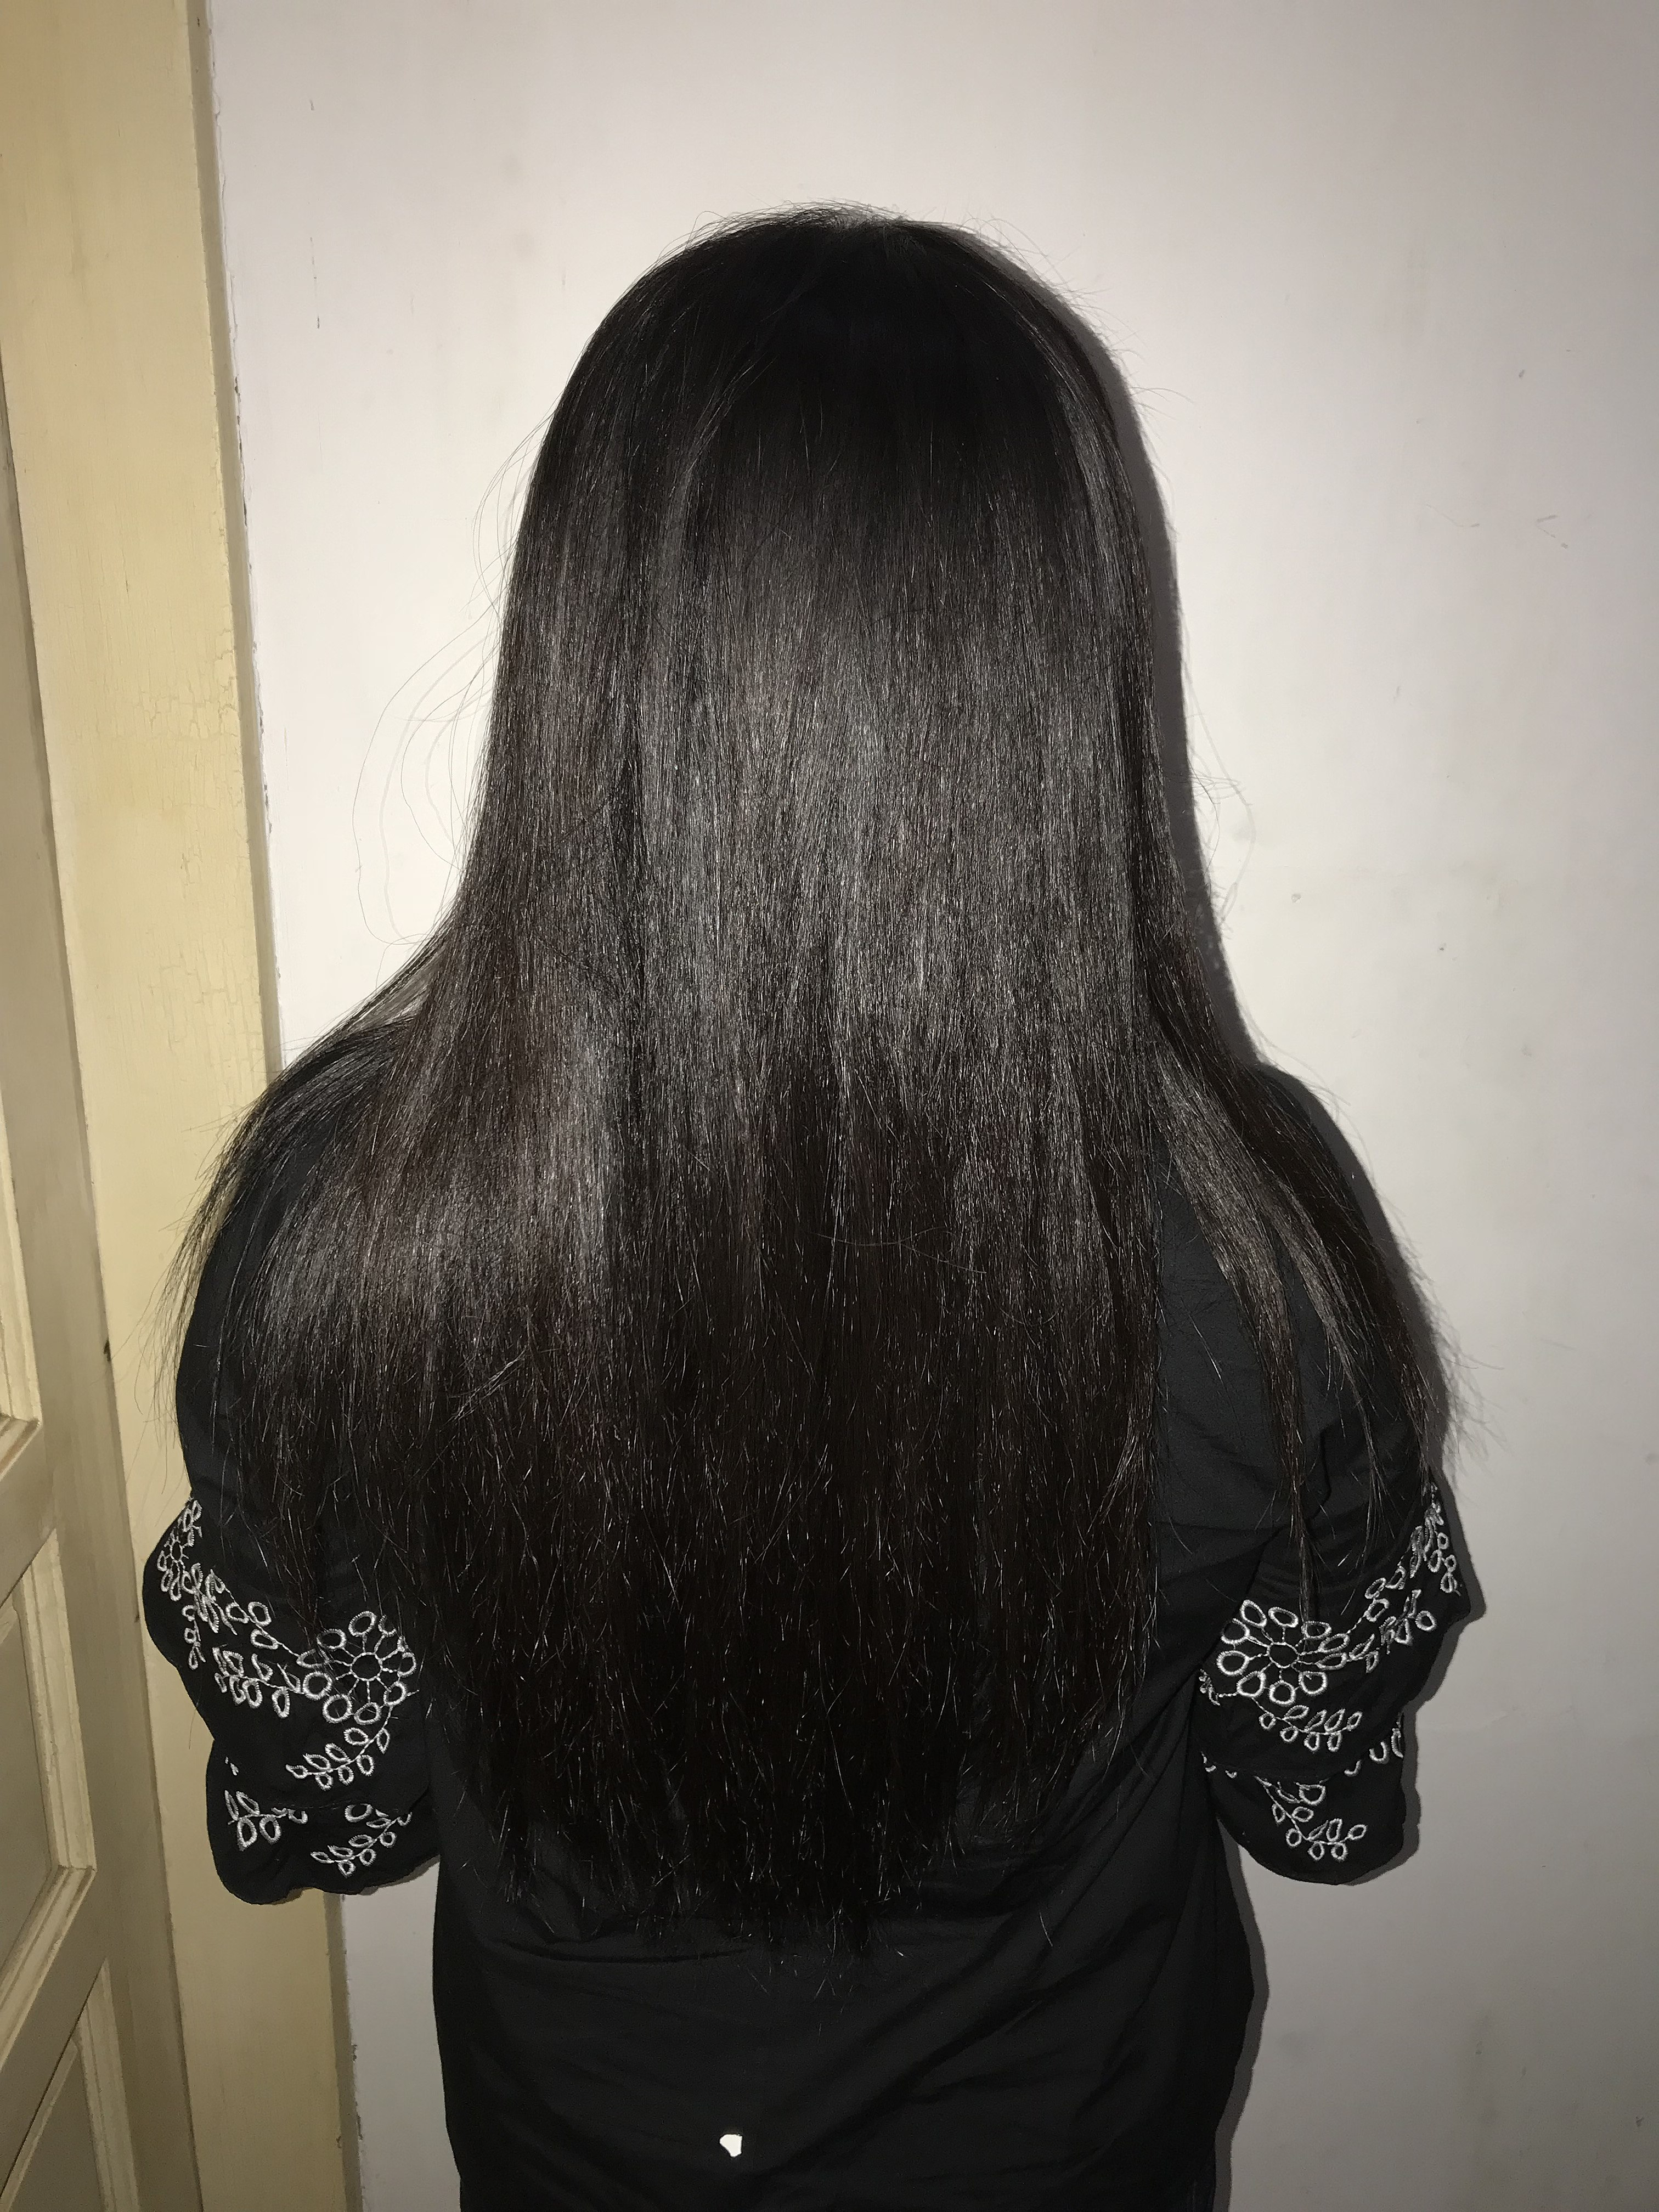 File:Rear view of a woman with shiny long black hair.jpg